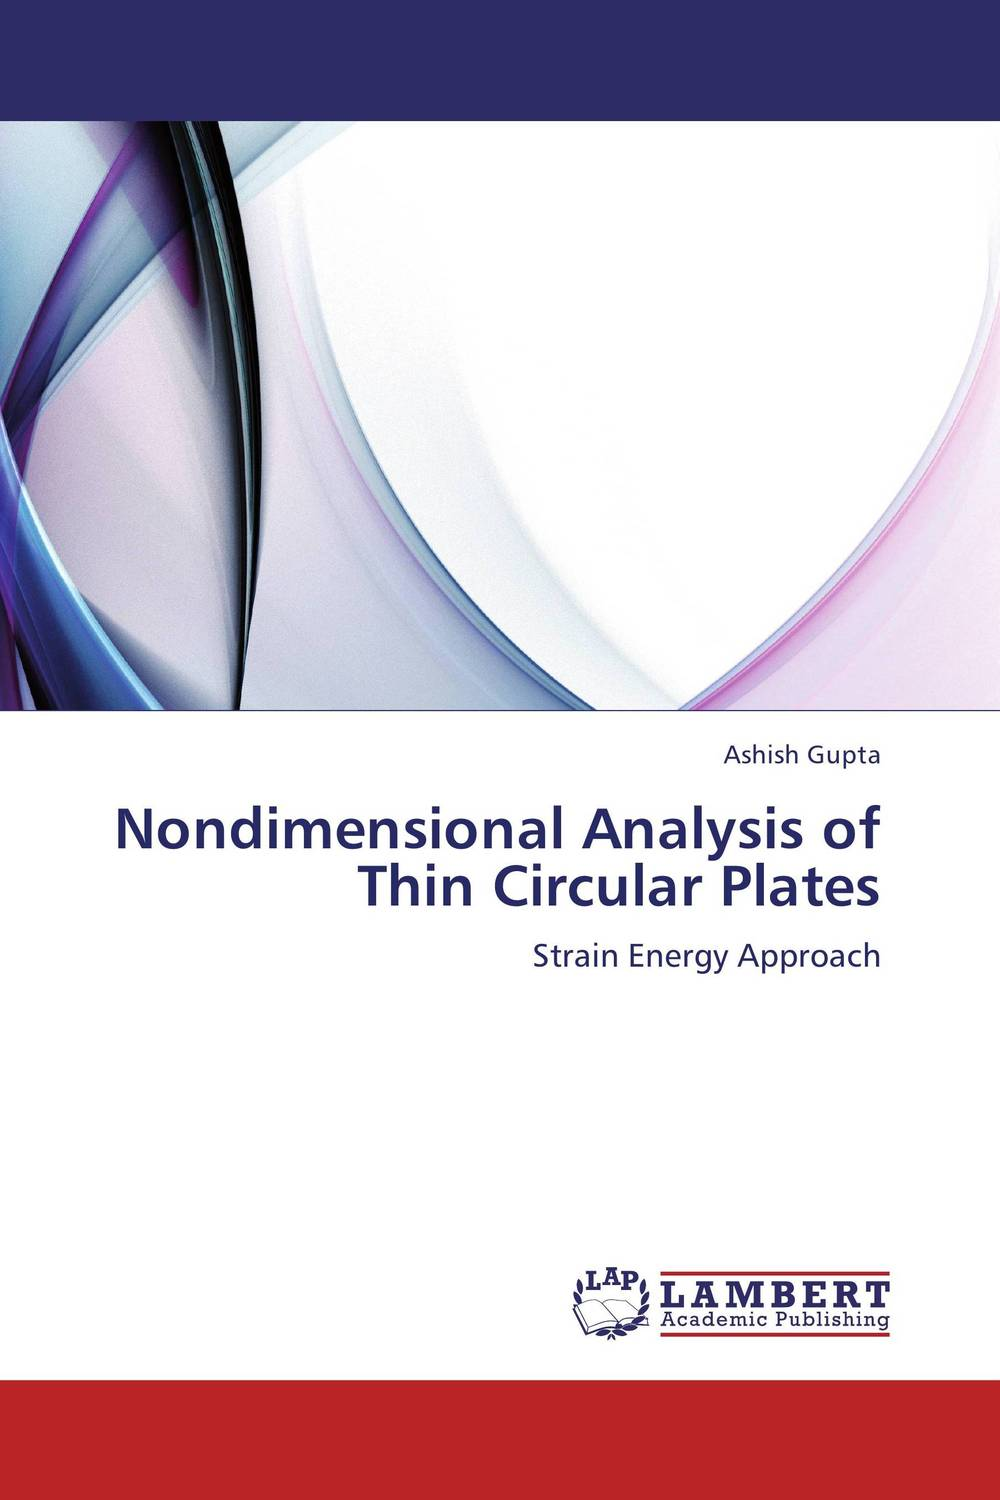 Nondimensional Analysis of Thin Circular Plates analysis transform pcb board emmc analysis assay plates for test device transforming signal out to the ic in socket